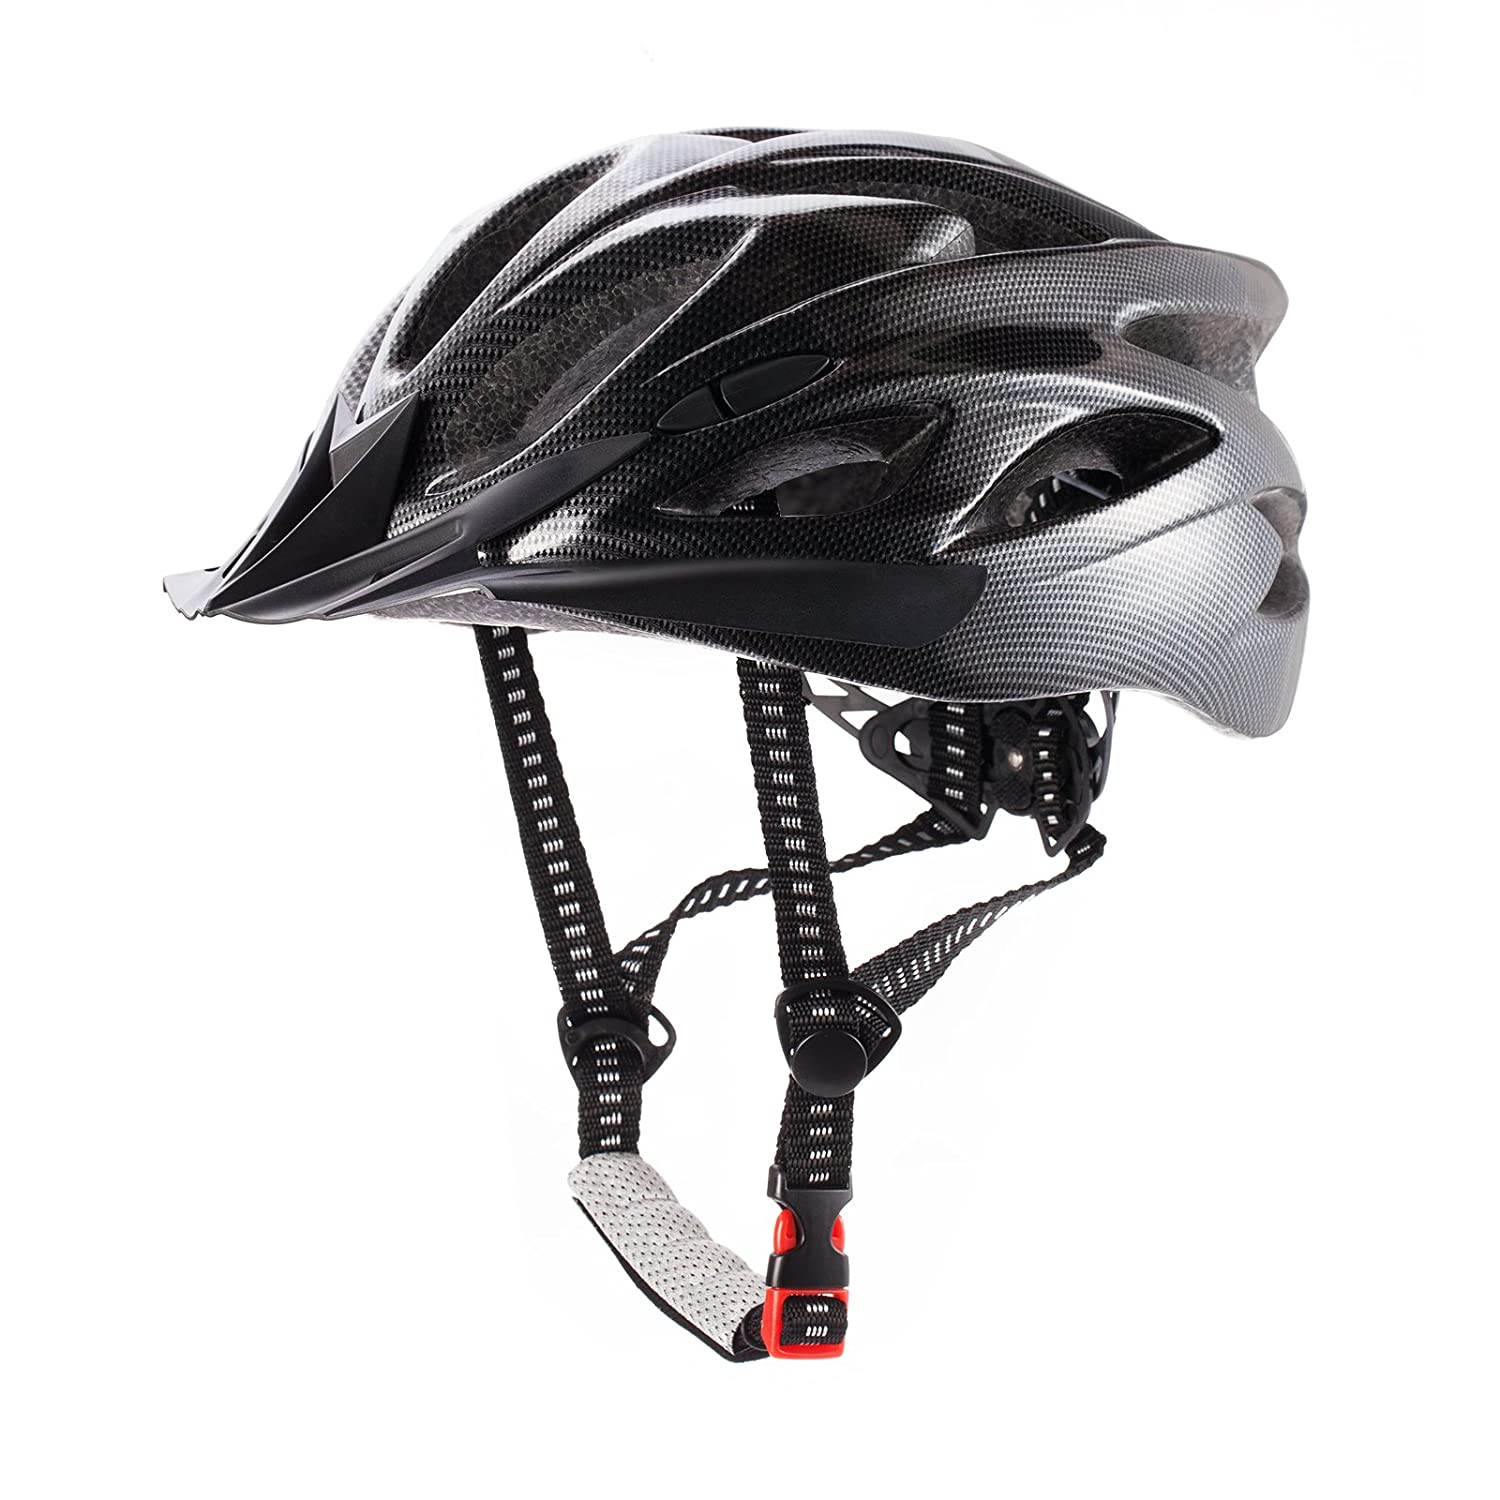 Cctro Adult Cycling Bike Helmet Eco Friendly Lixada Mountain Adjustable Trinity Men Women Bicycle Road Safety Protection A Black